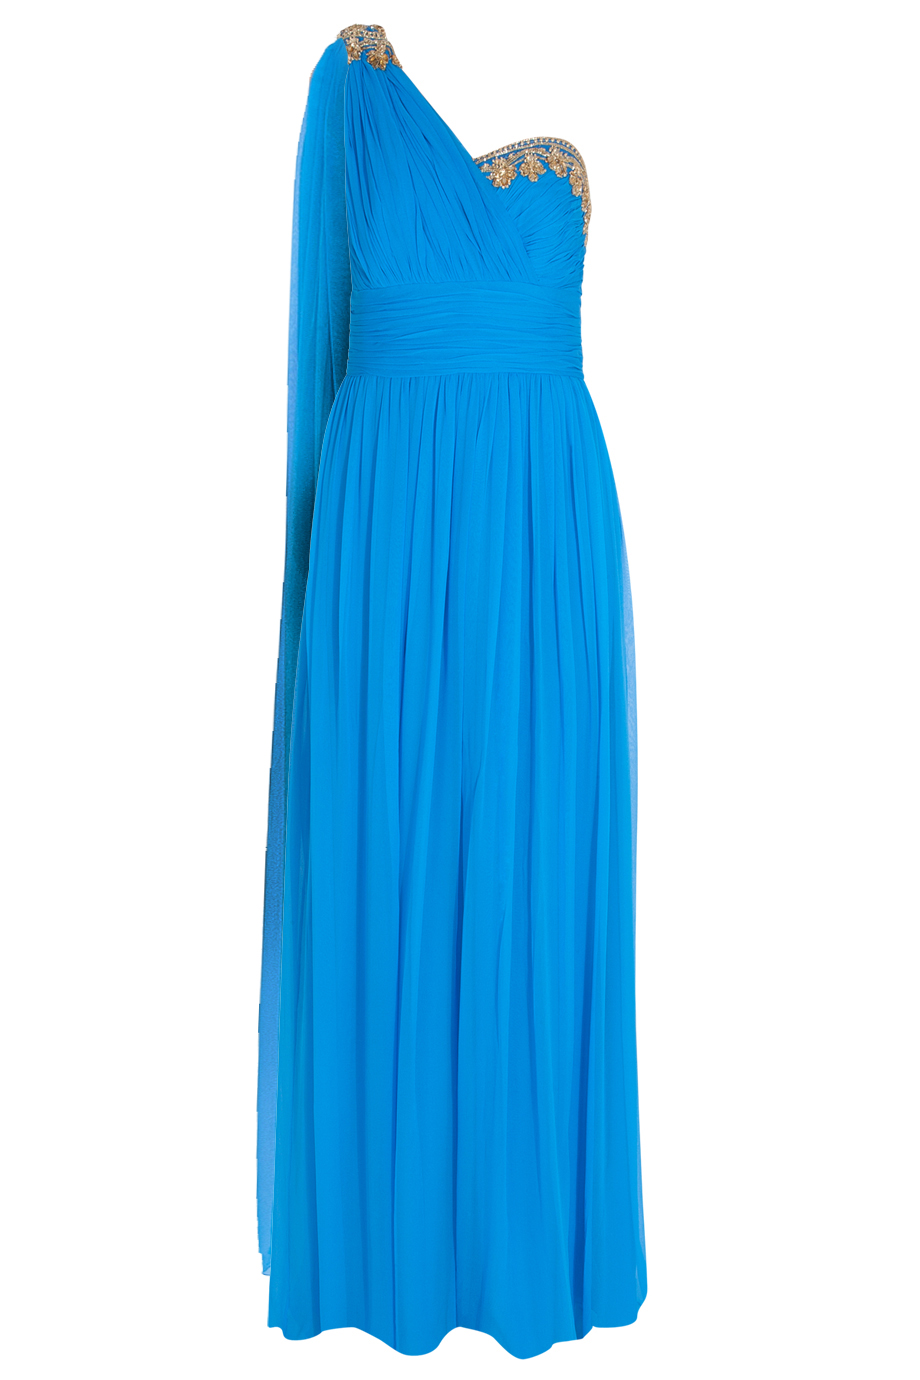 women s one shoulder embellished chiffon Shop dressy tops and separates for your next night out at affordable prices  petite layered chiffon wide leg pants  gilded chiffon sweetheart maxi dress.